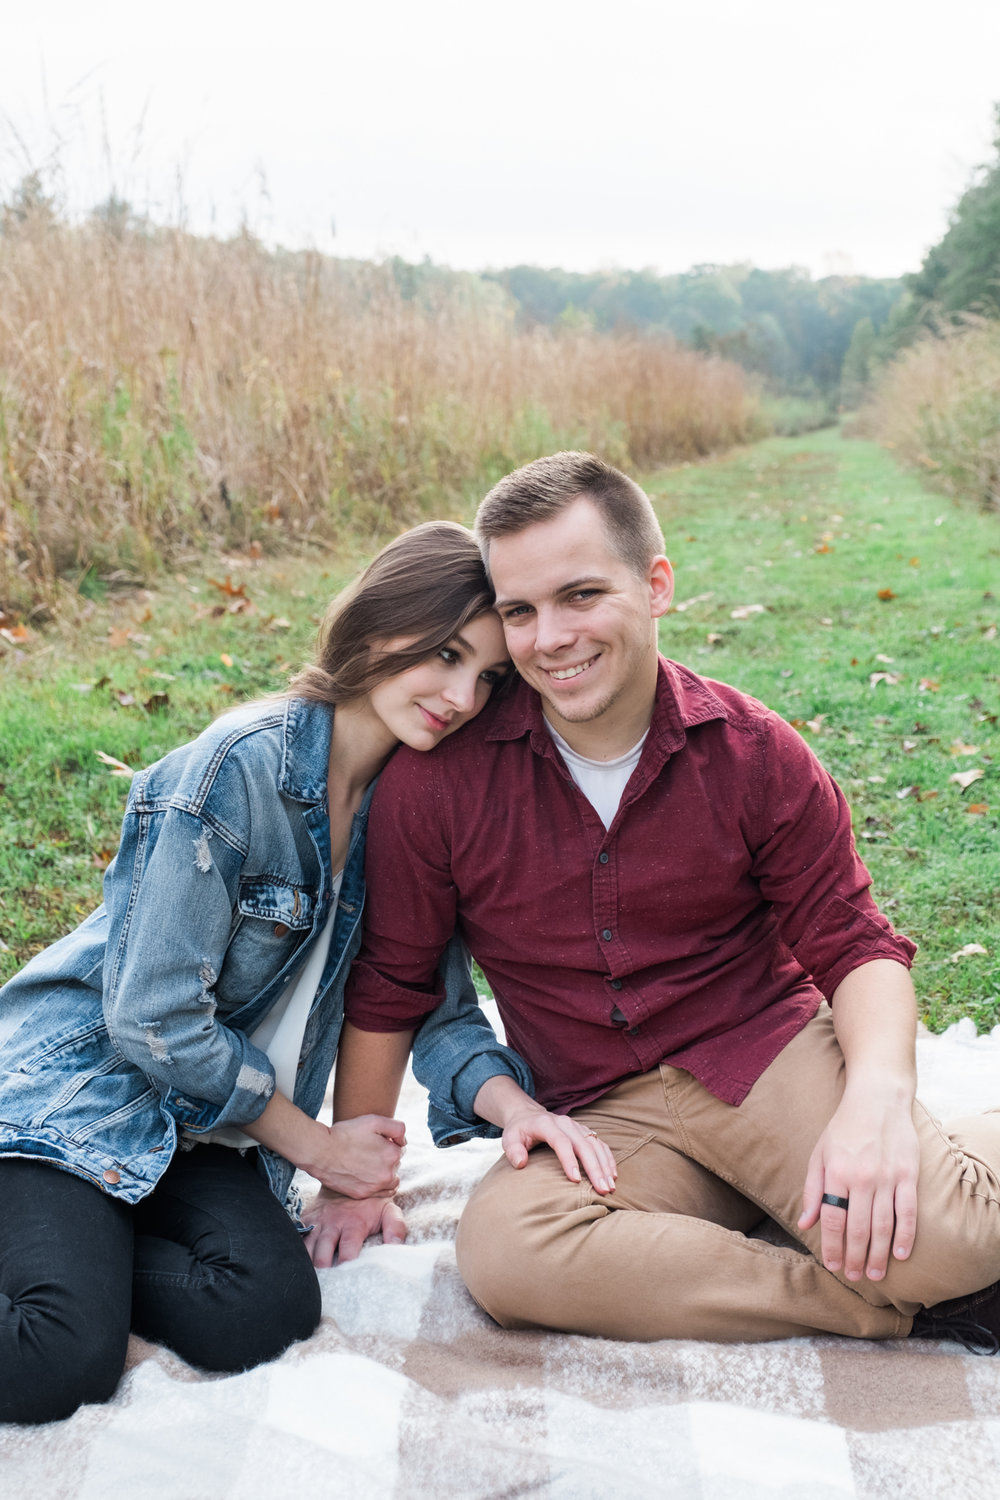 Emily&Daniel_Engagement_Blog_0011.jpg